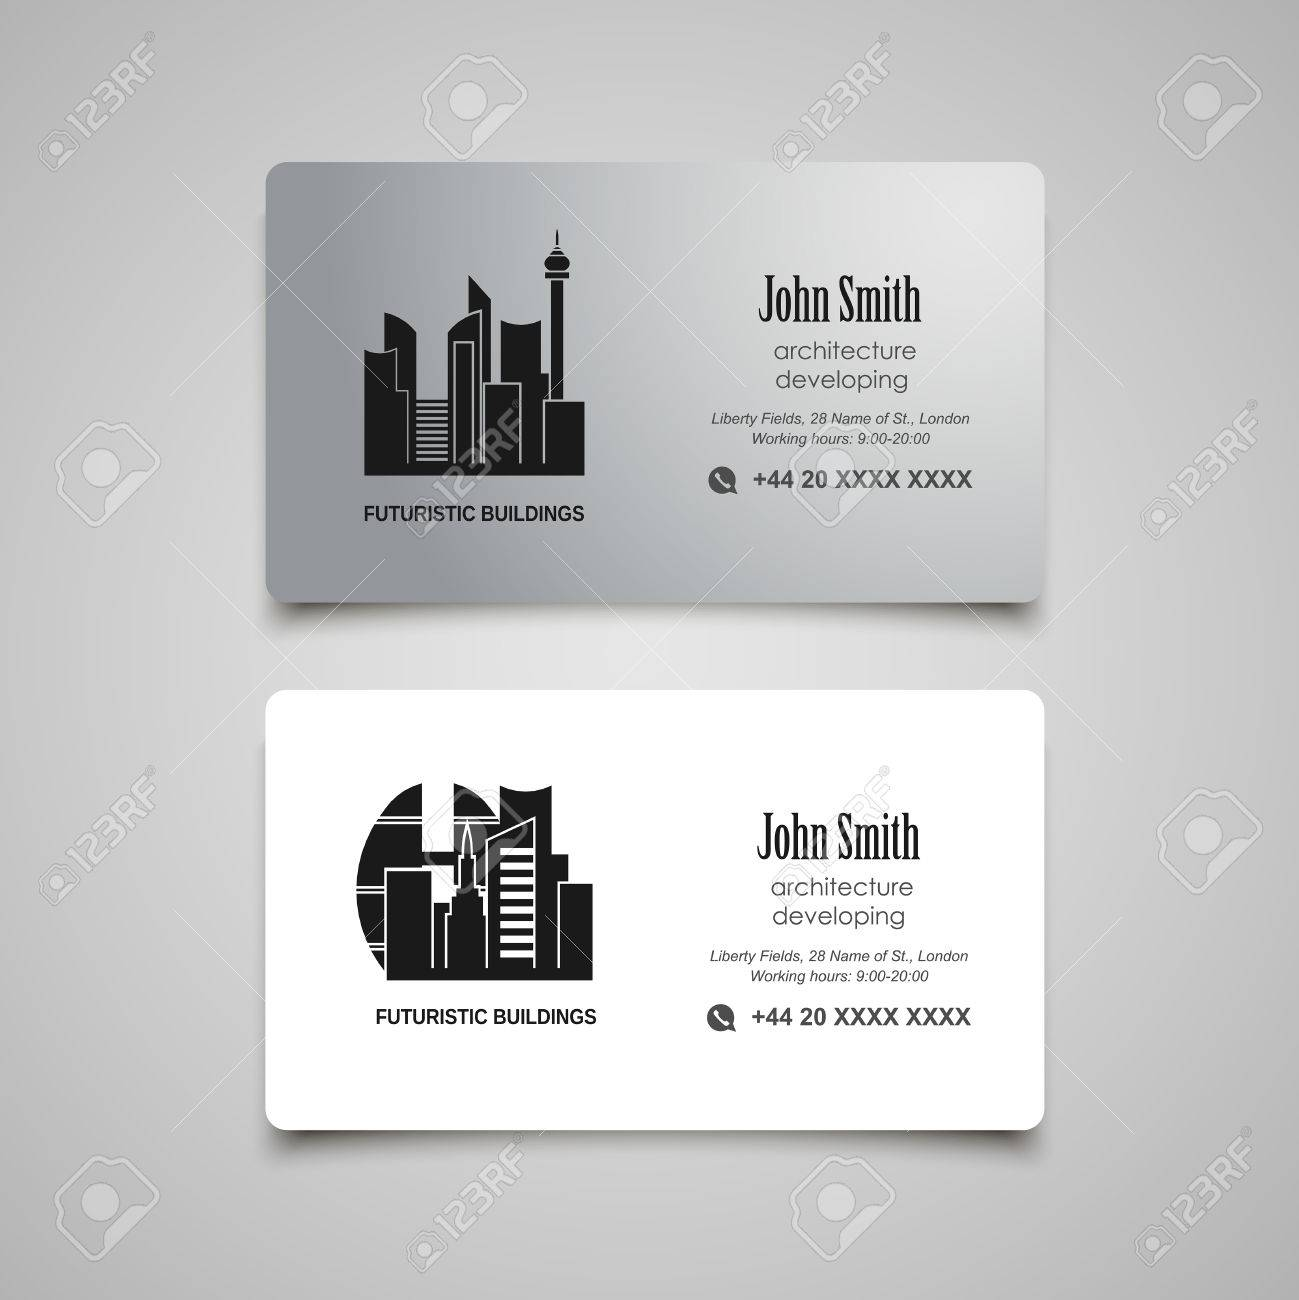 Architecture developing or rent business card template royalty free architecture developing or rent business card template stock vector 39316633 reheart Gallery